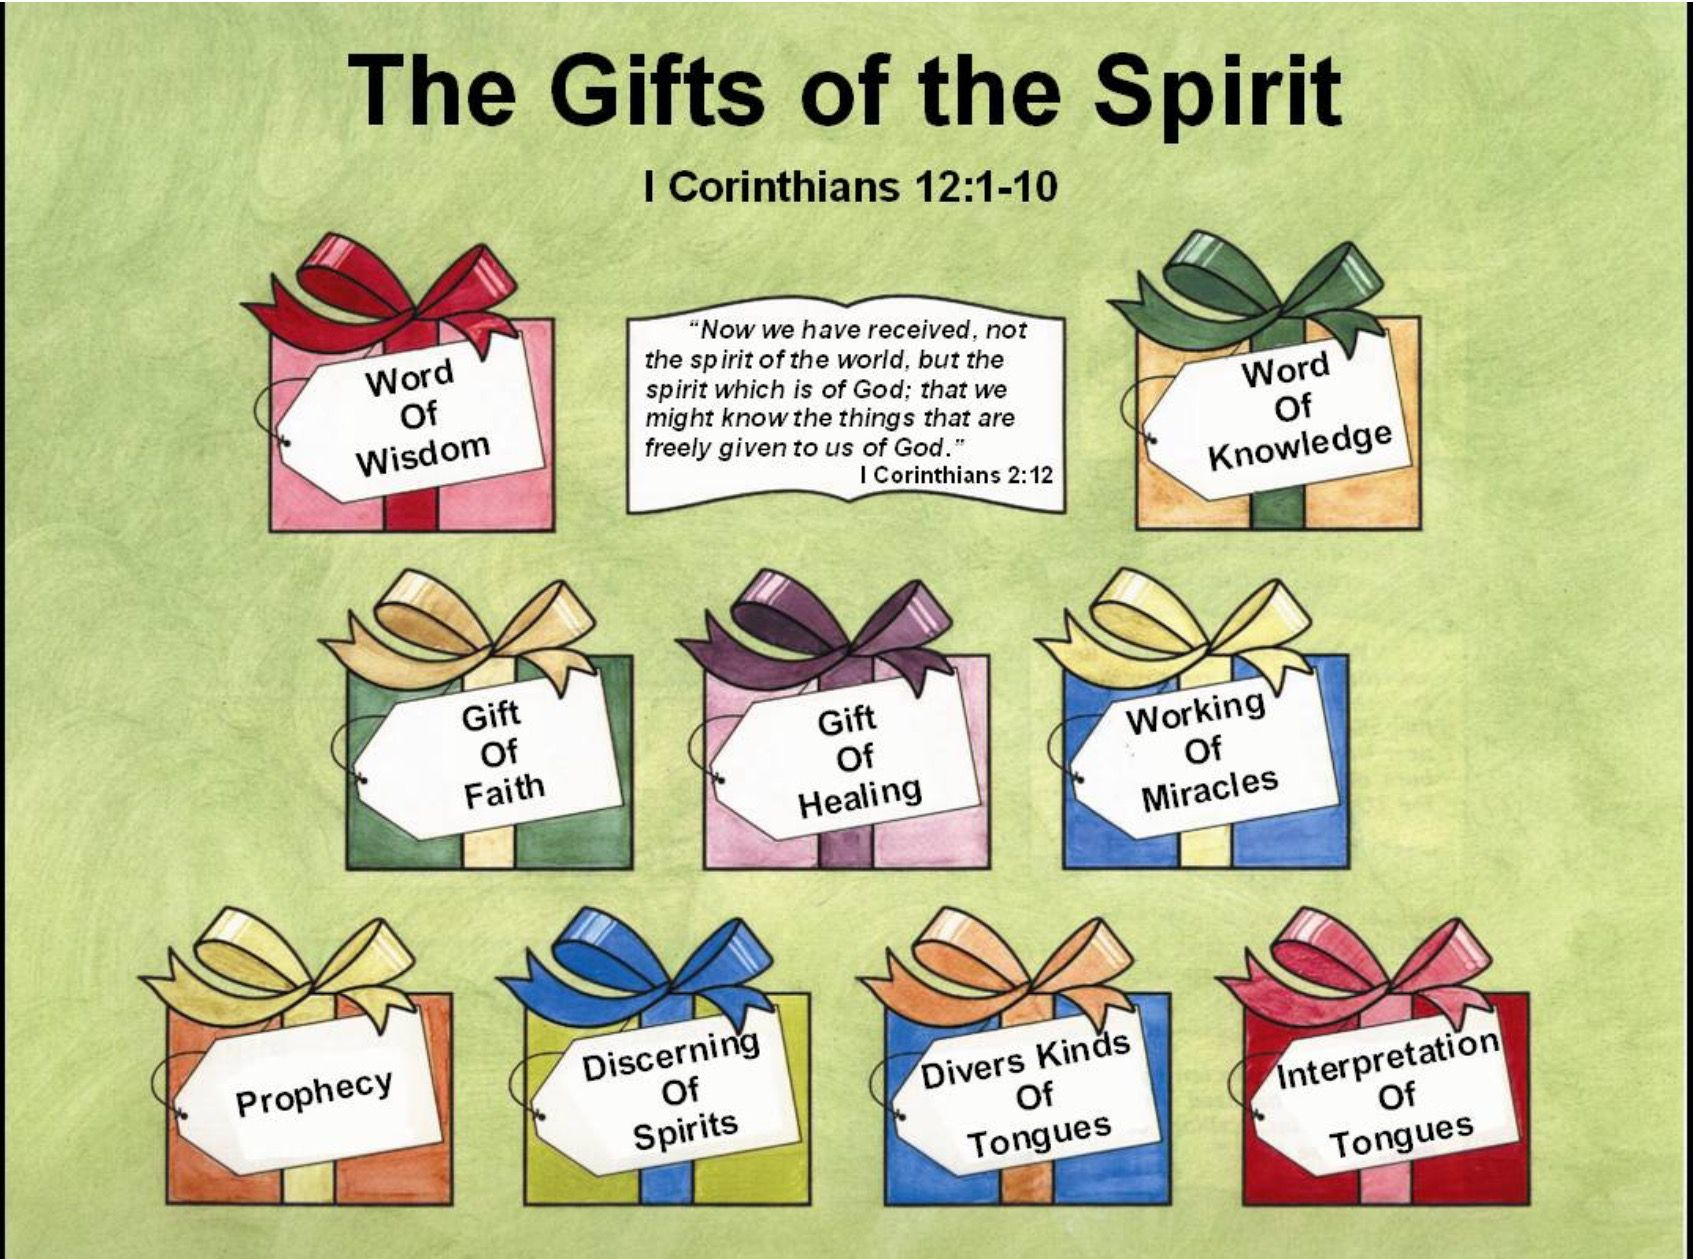 Gifts of the spirit gifts of the spirit